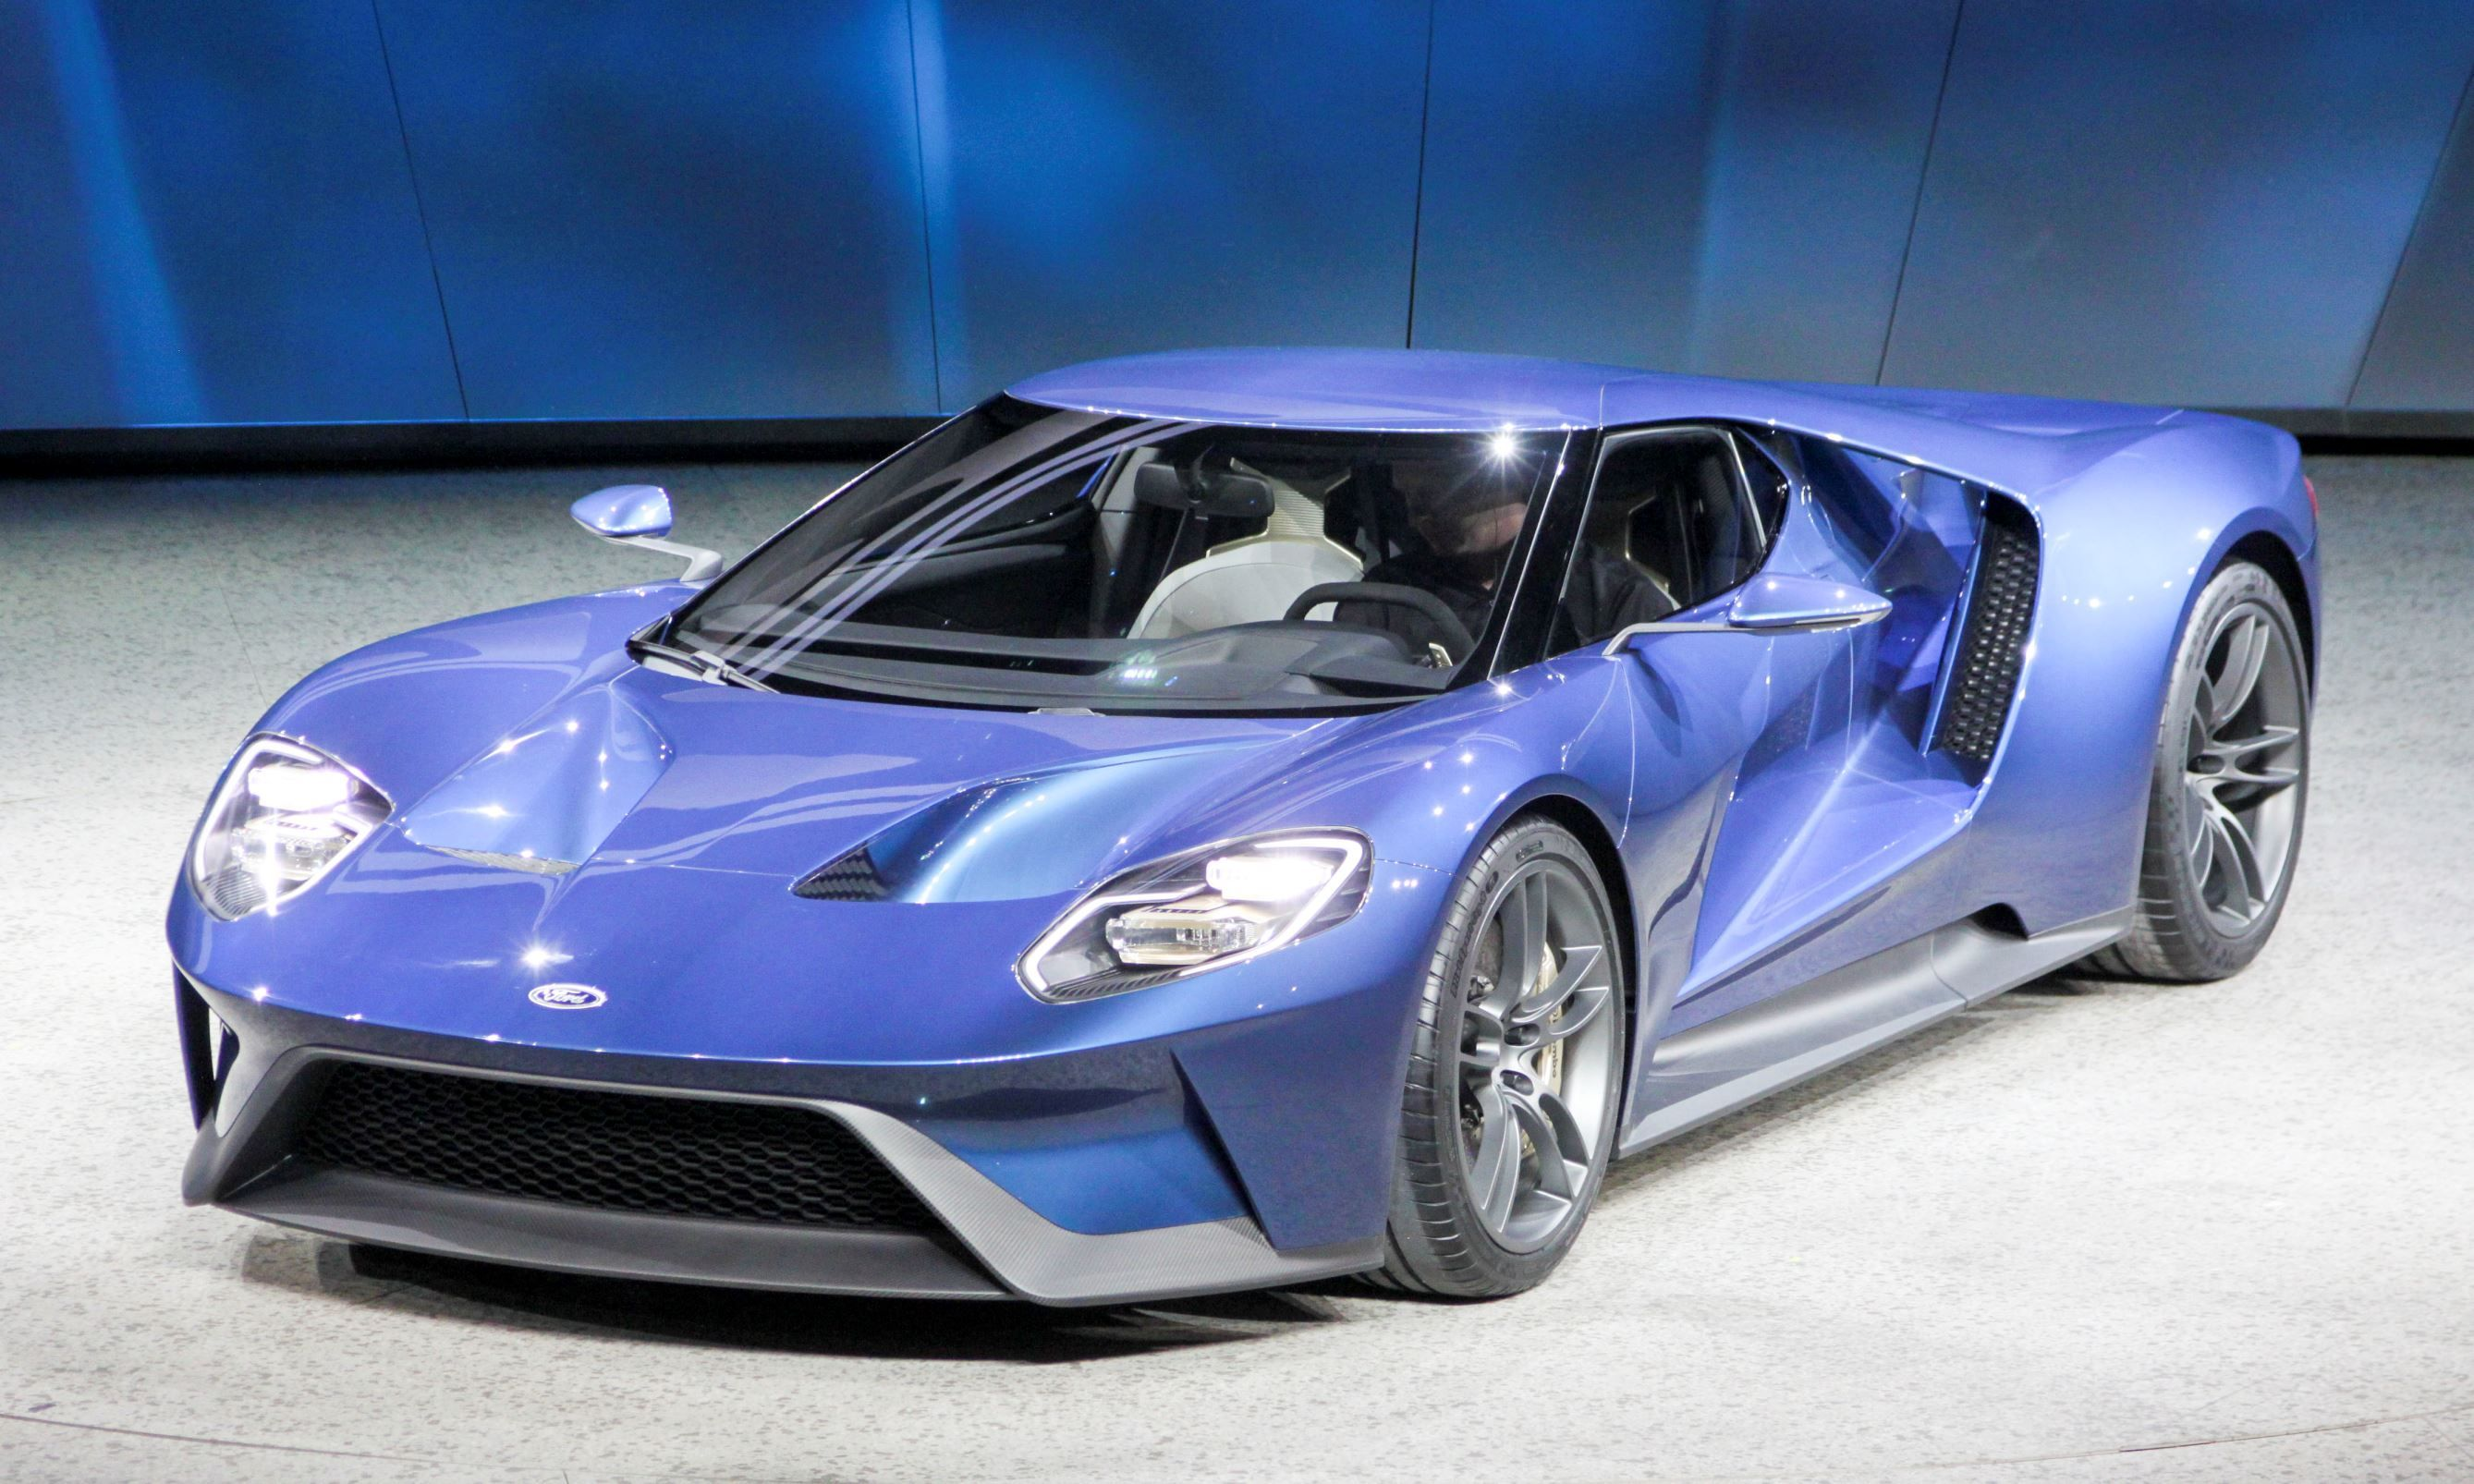 American Power Brokers Ford Gt Price Tba In  Three Ford Gt Race Cars